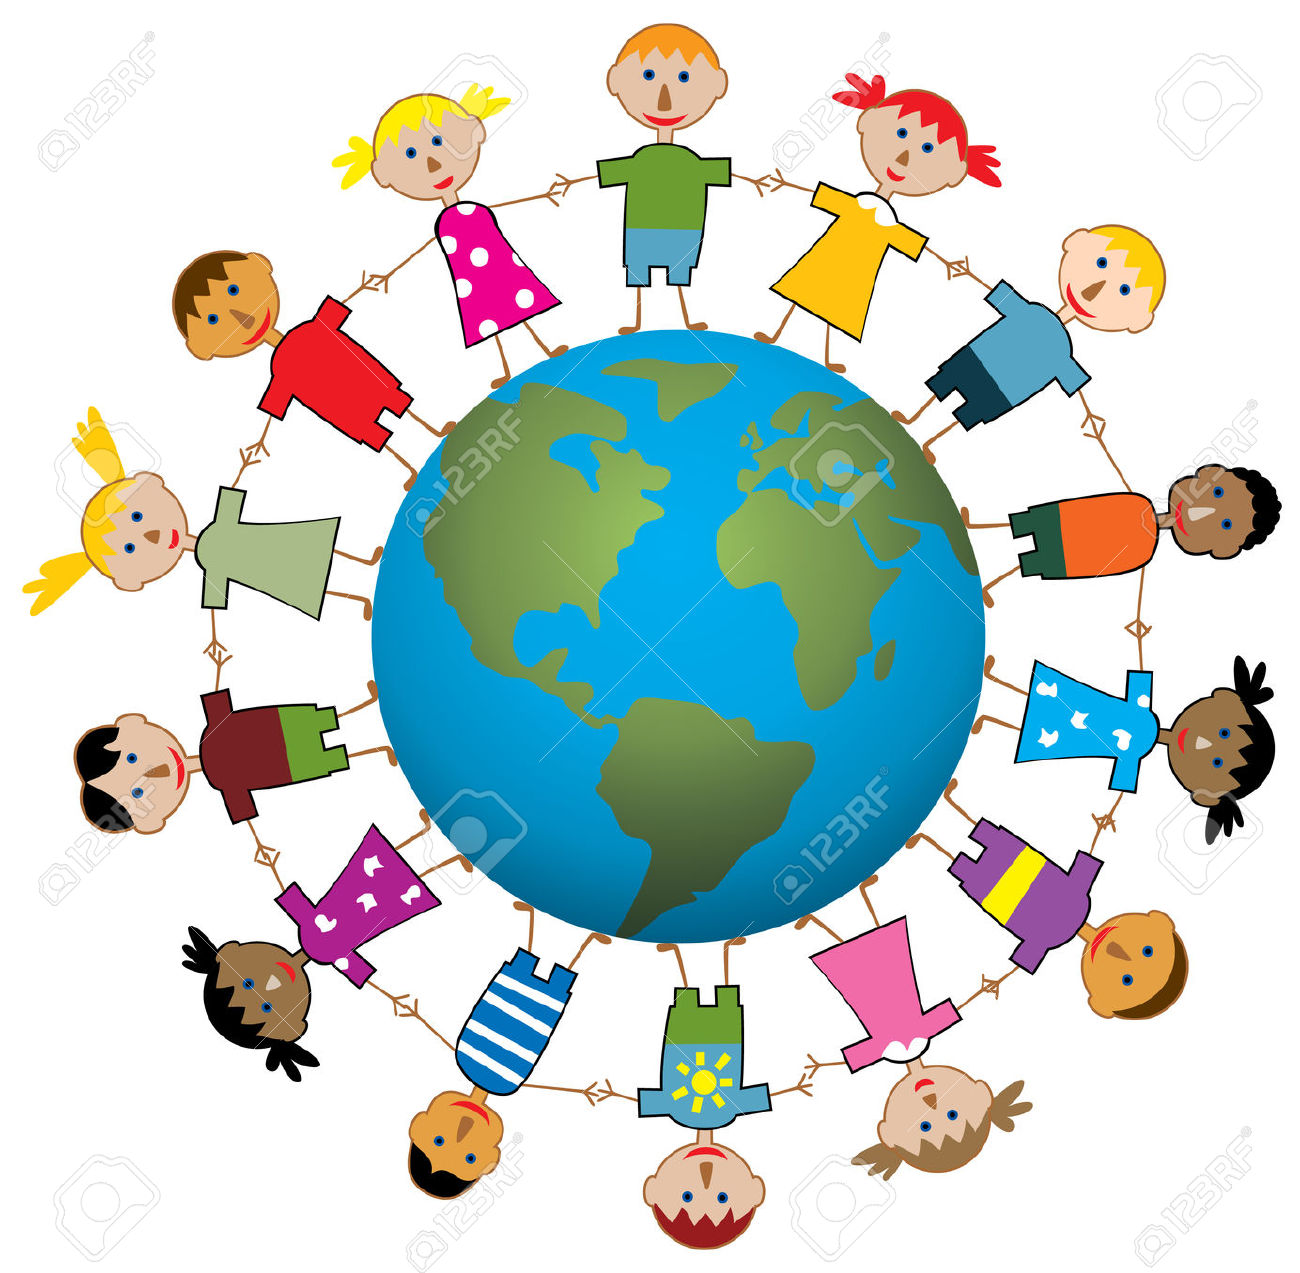 1300x1273 Children Around The World Free Cliparts Vectors And.jpg 3rd